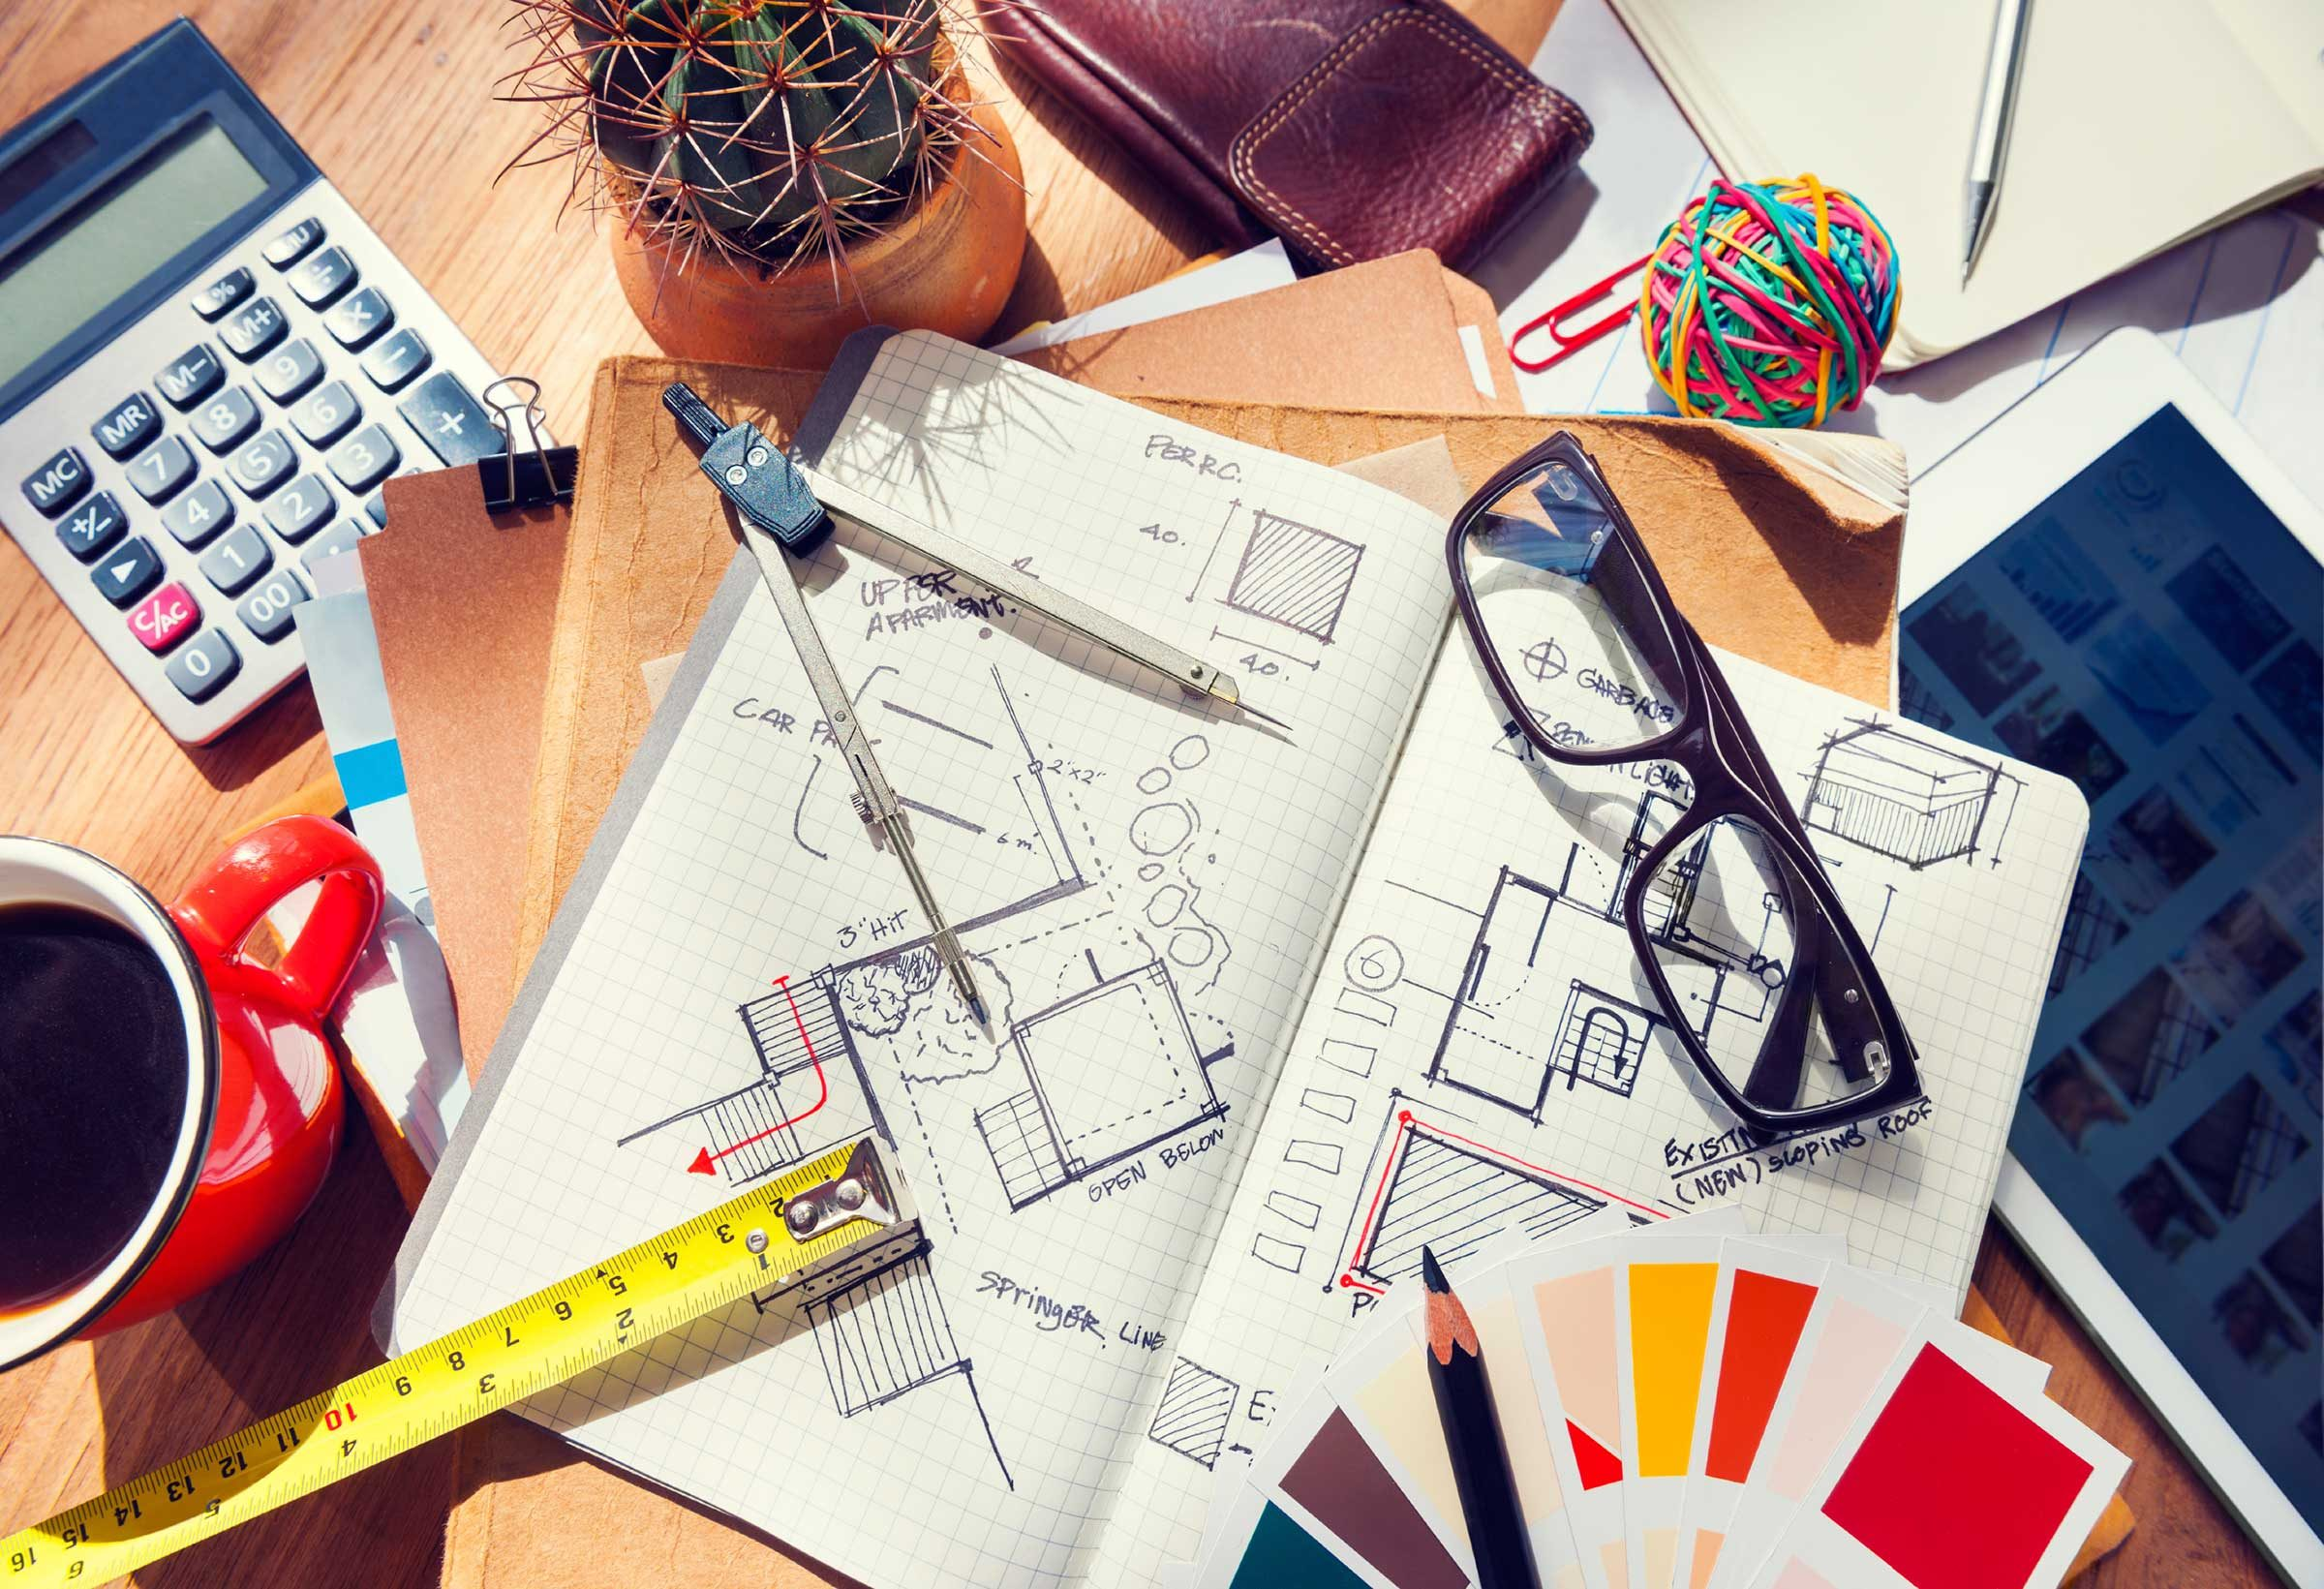 Benefits Of Working As An Interior Designer